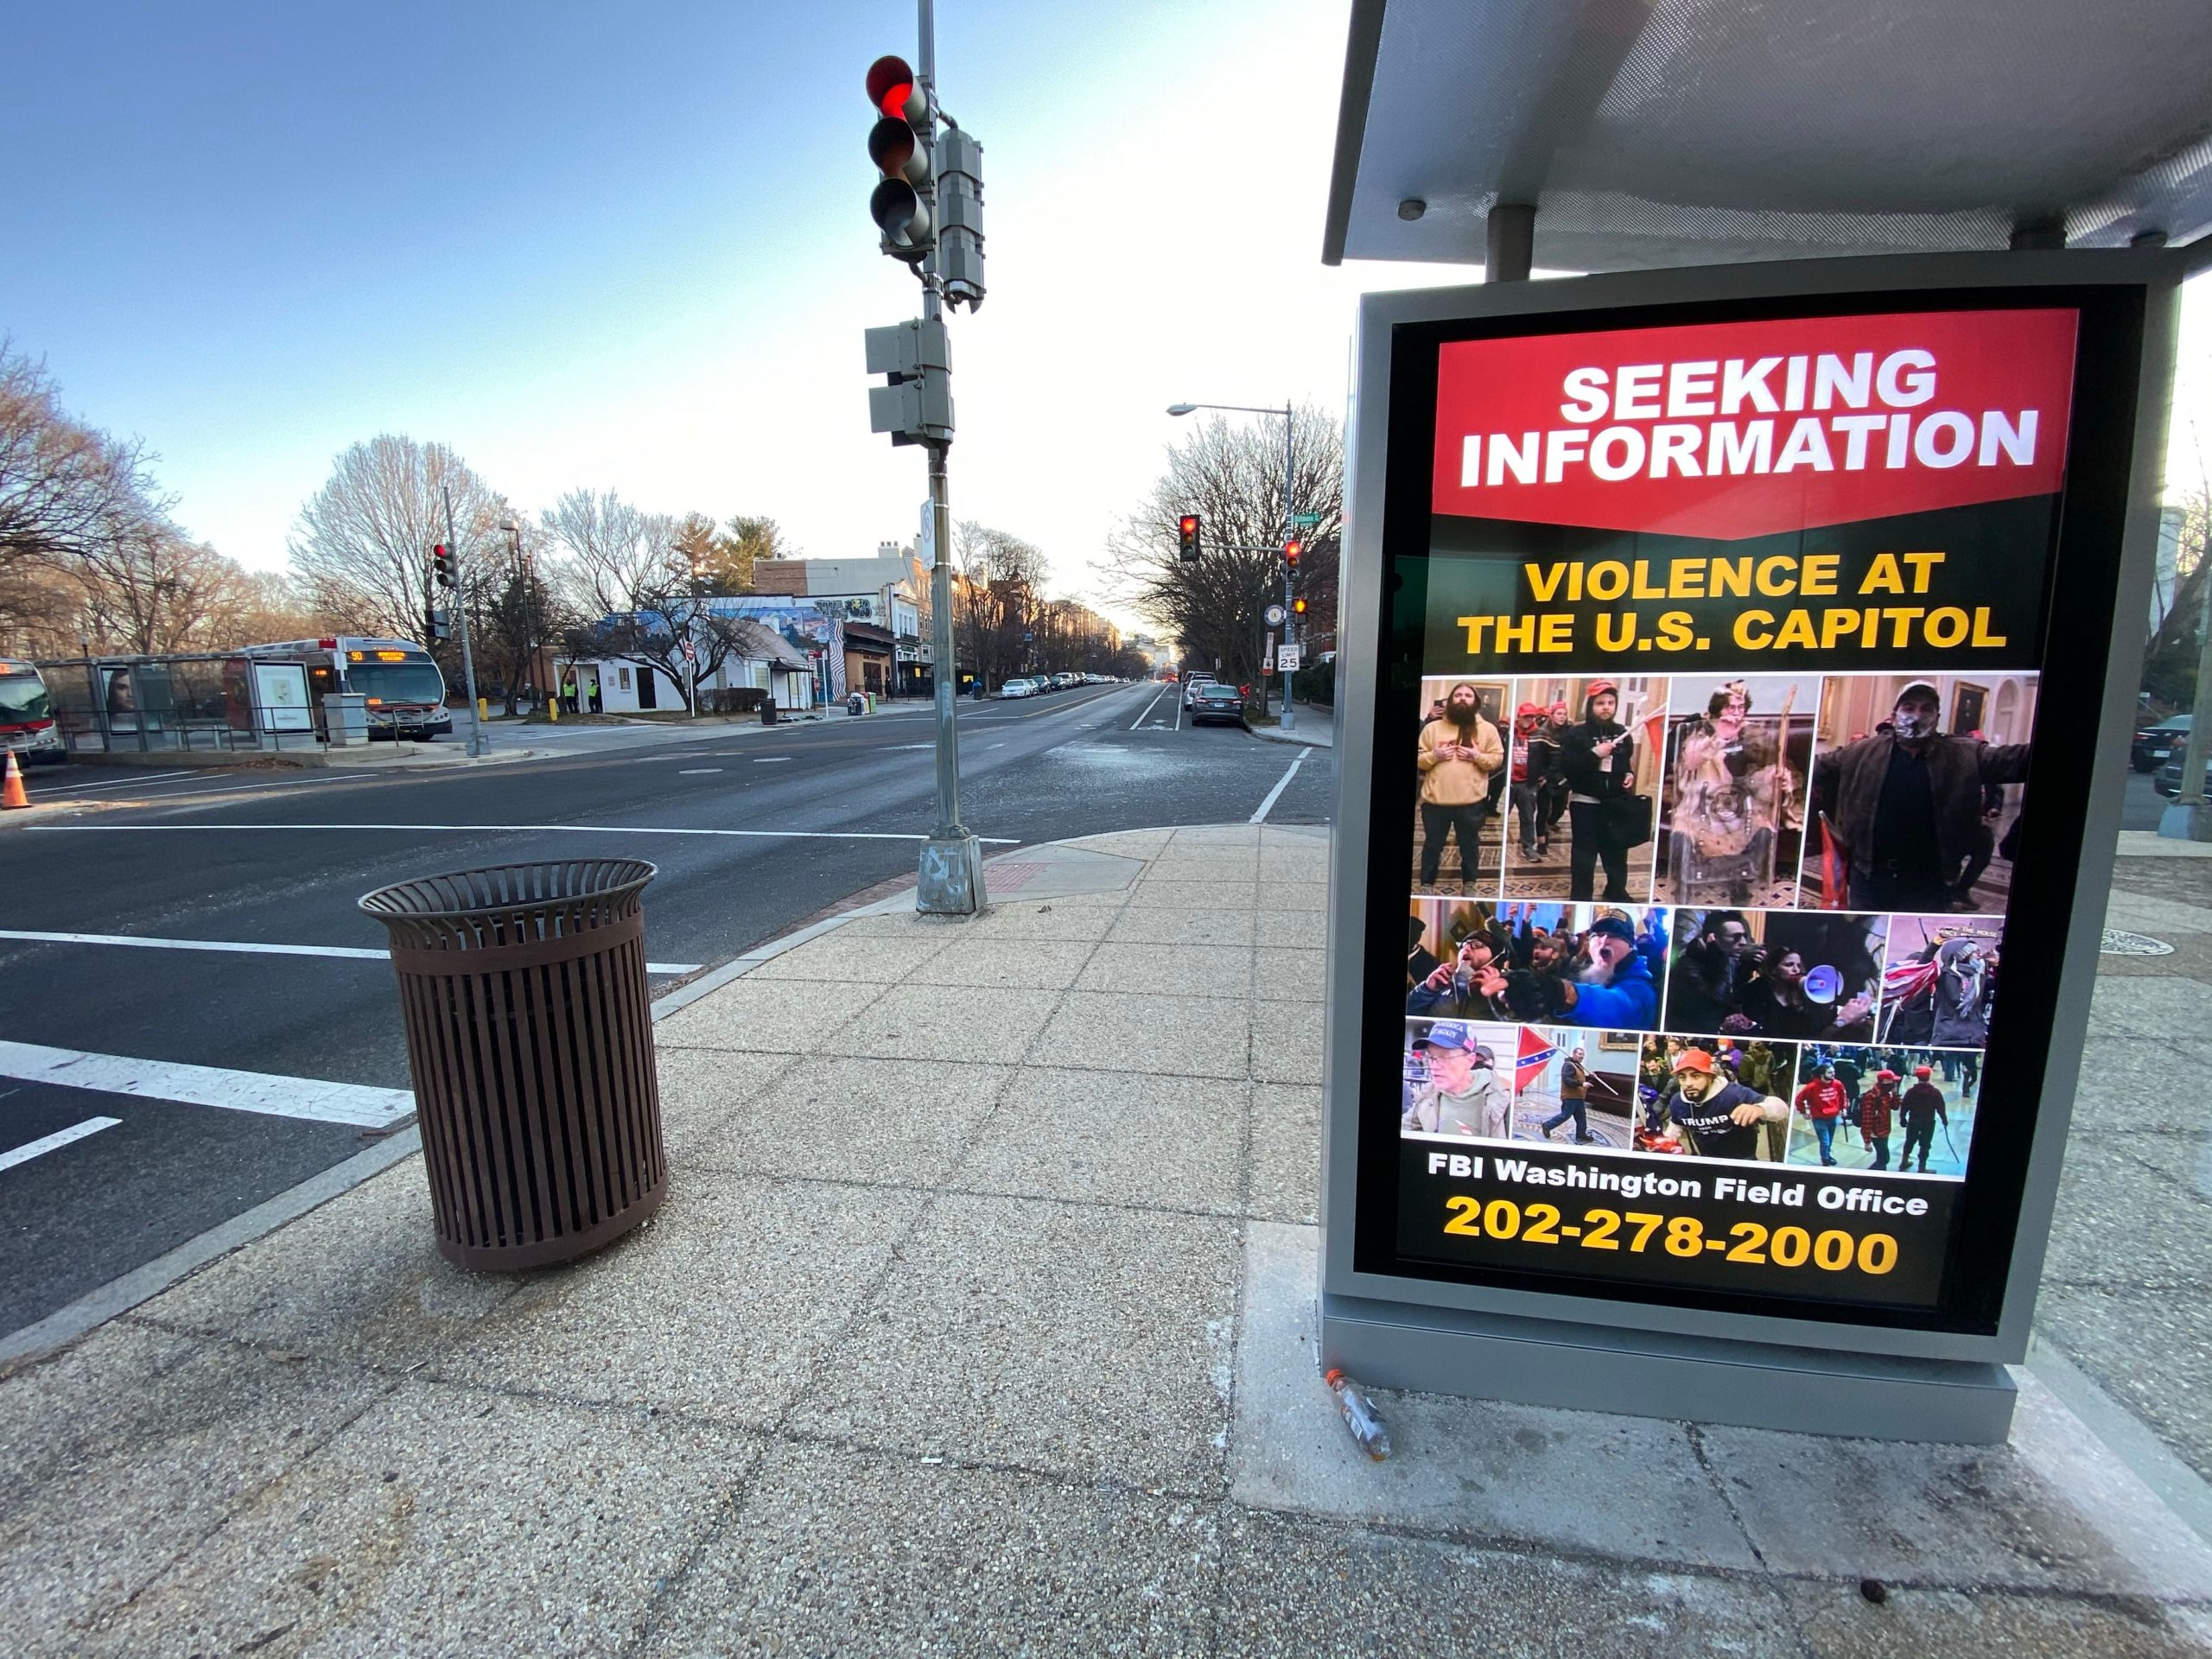 A poster distributed by the FBI seeking information on Capitol rioters is seen displayed at a bus stop kiosk in Washington, D.C. on Jan. 13. (Eric Baradat/AFP via Getty Images)